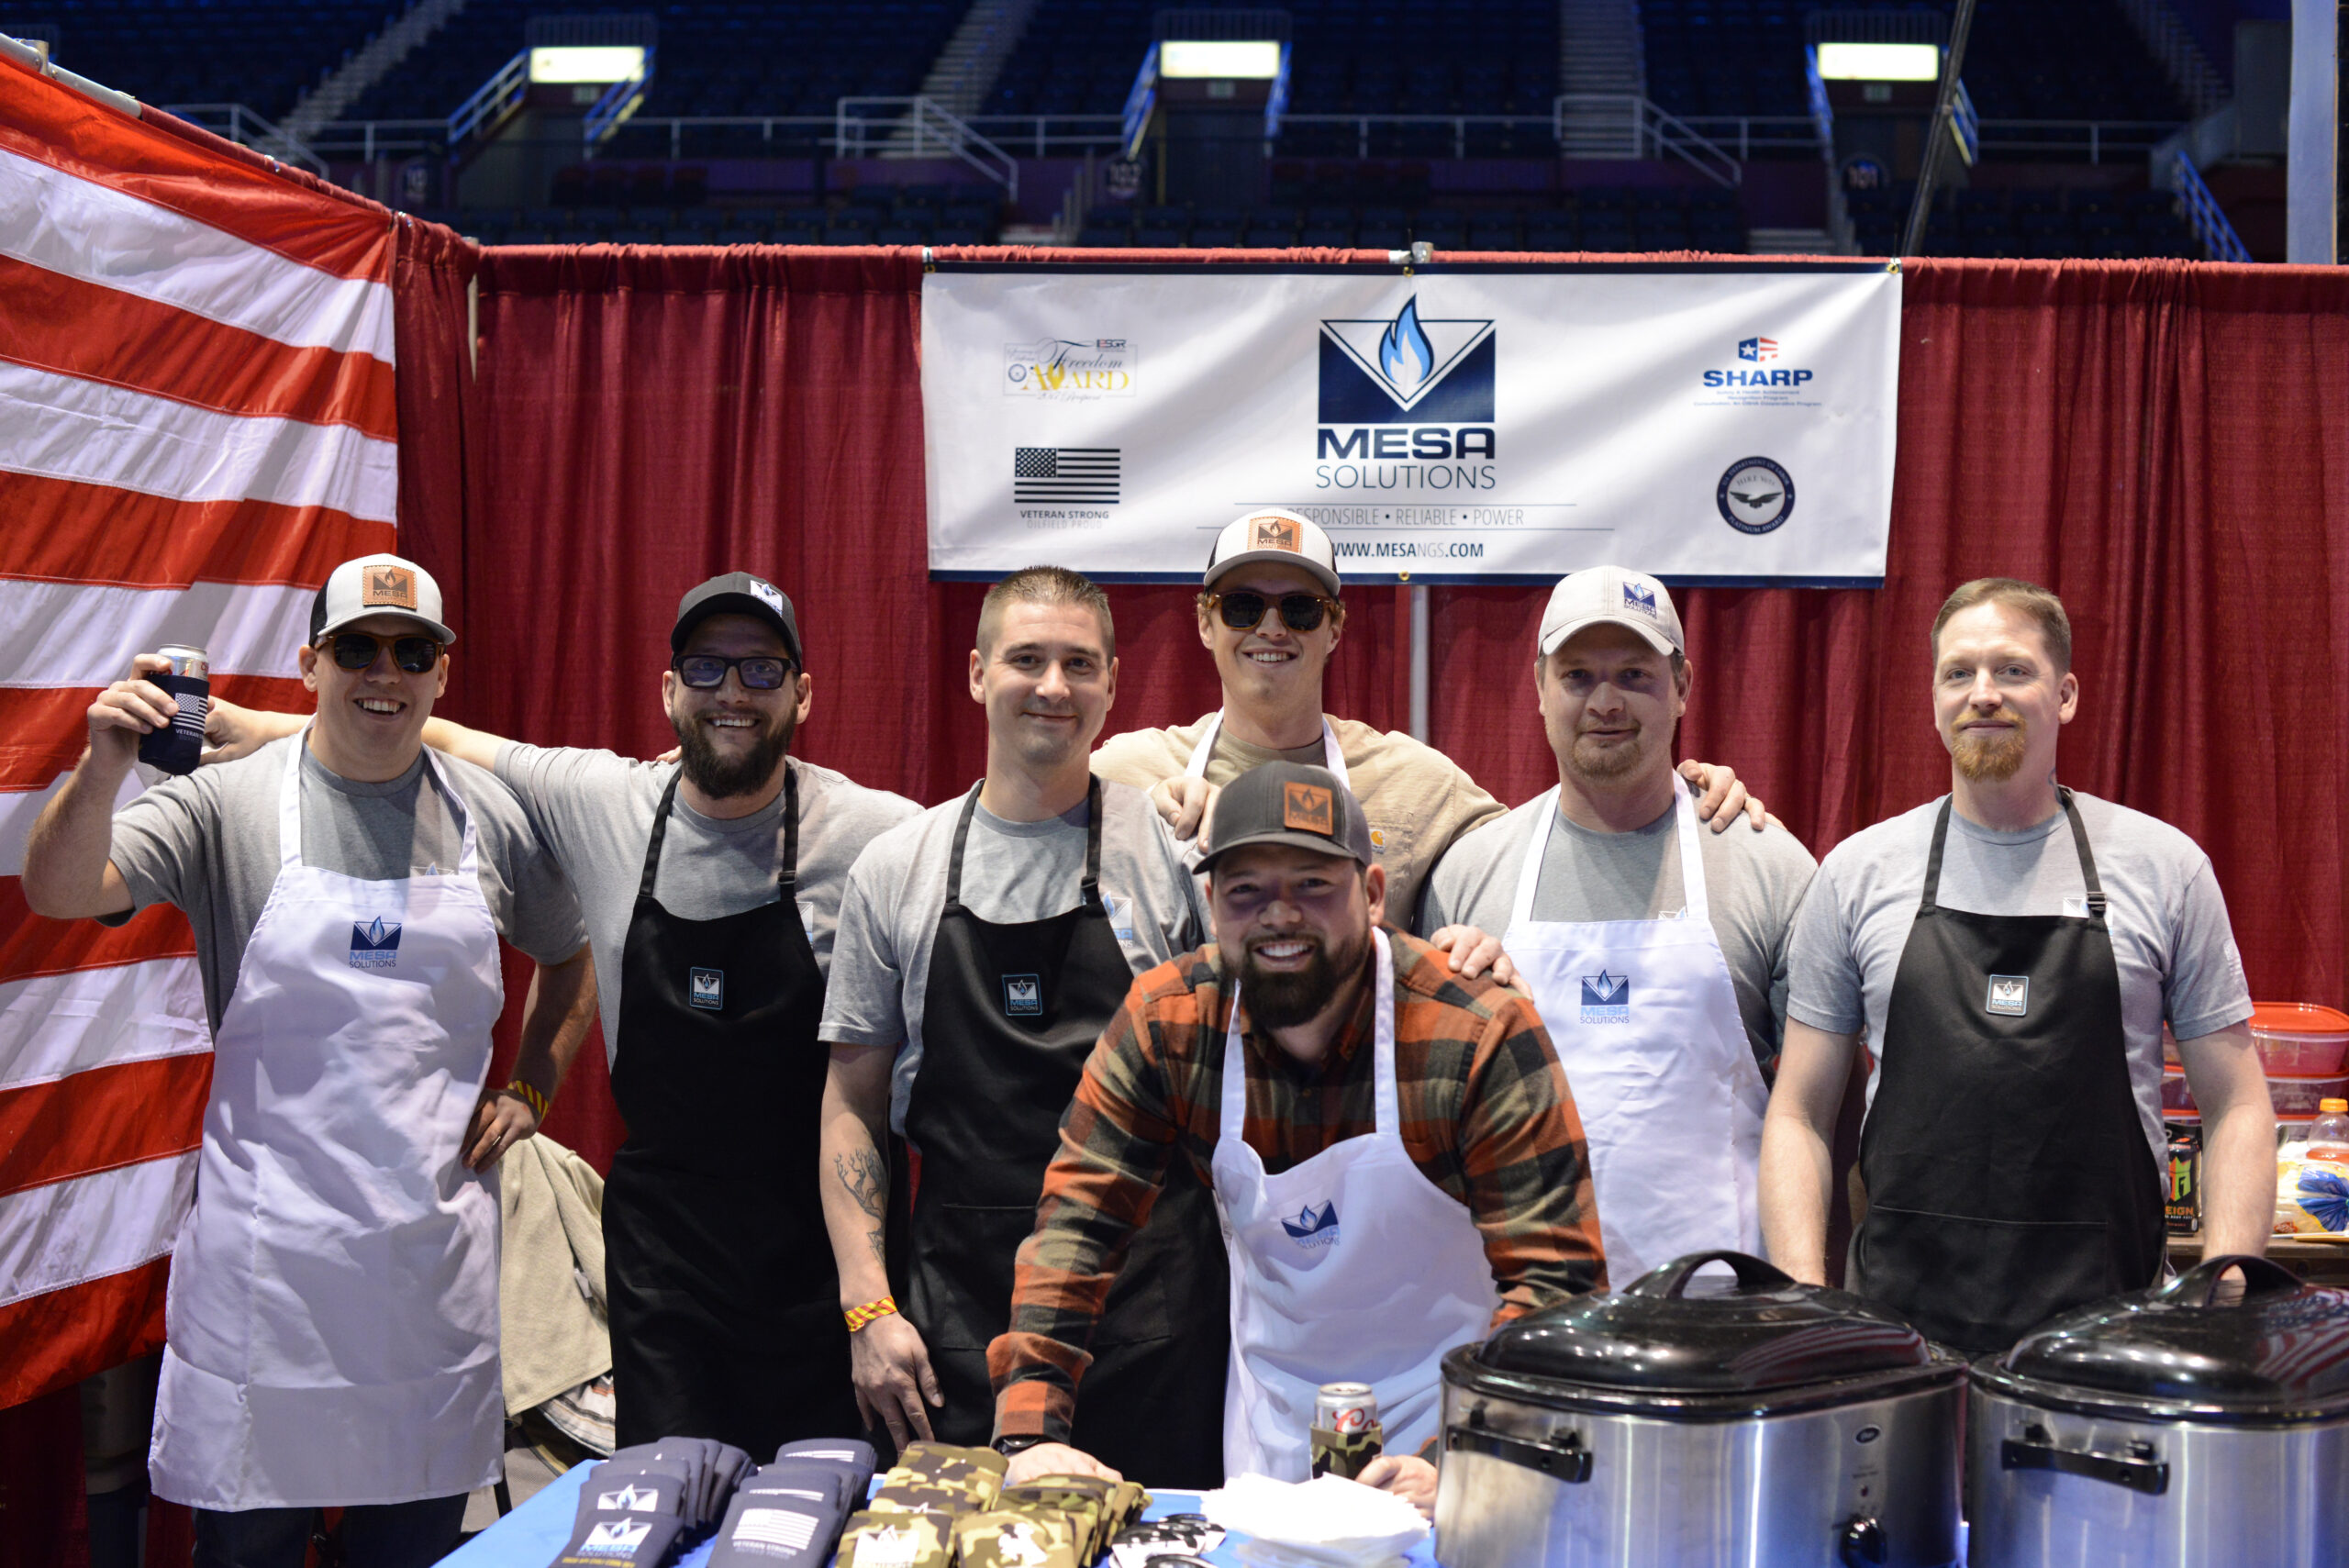 API chilly cook off 2020-1105